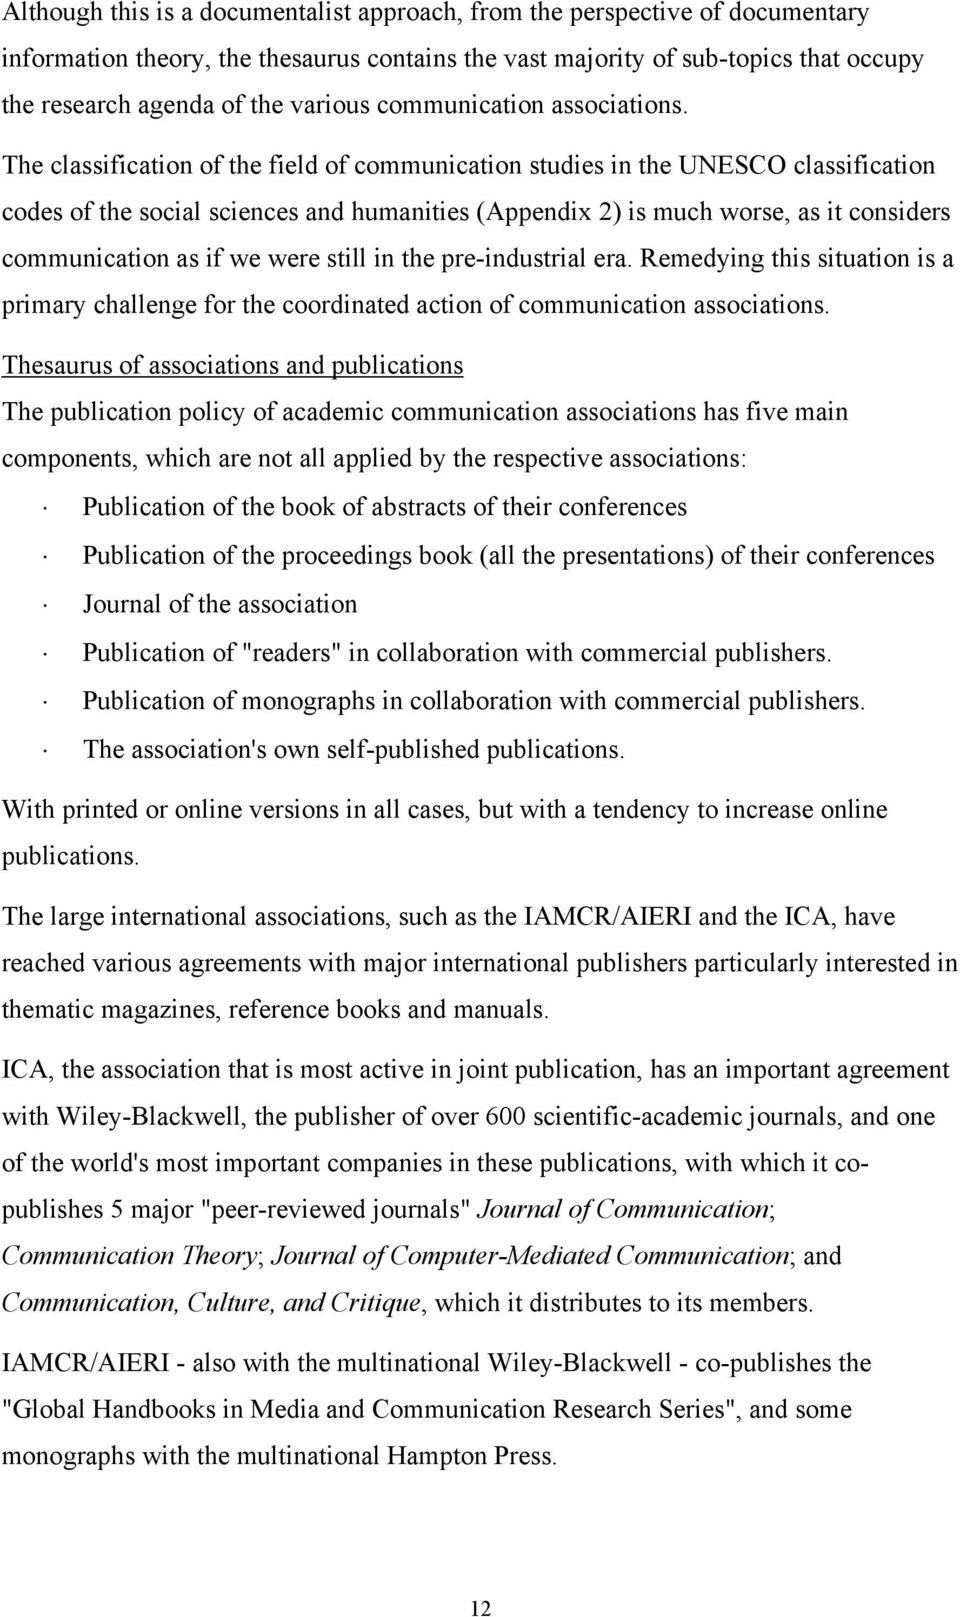 The classification of the field of communication studies in the UNESCO classification codes of the social sciences and humanities (Appendix 2) is much worse, as it considers communication as if we